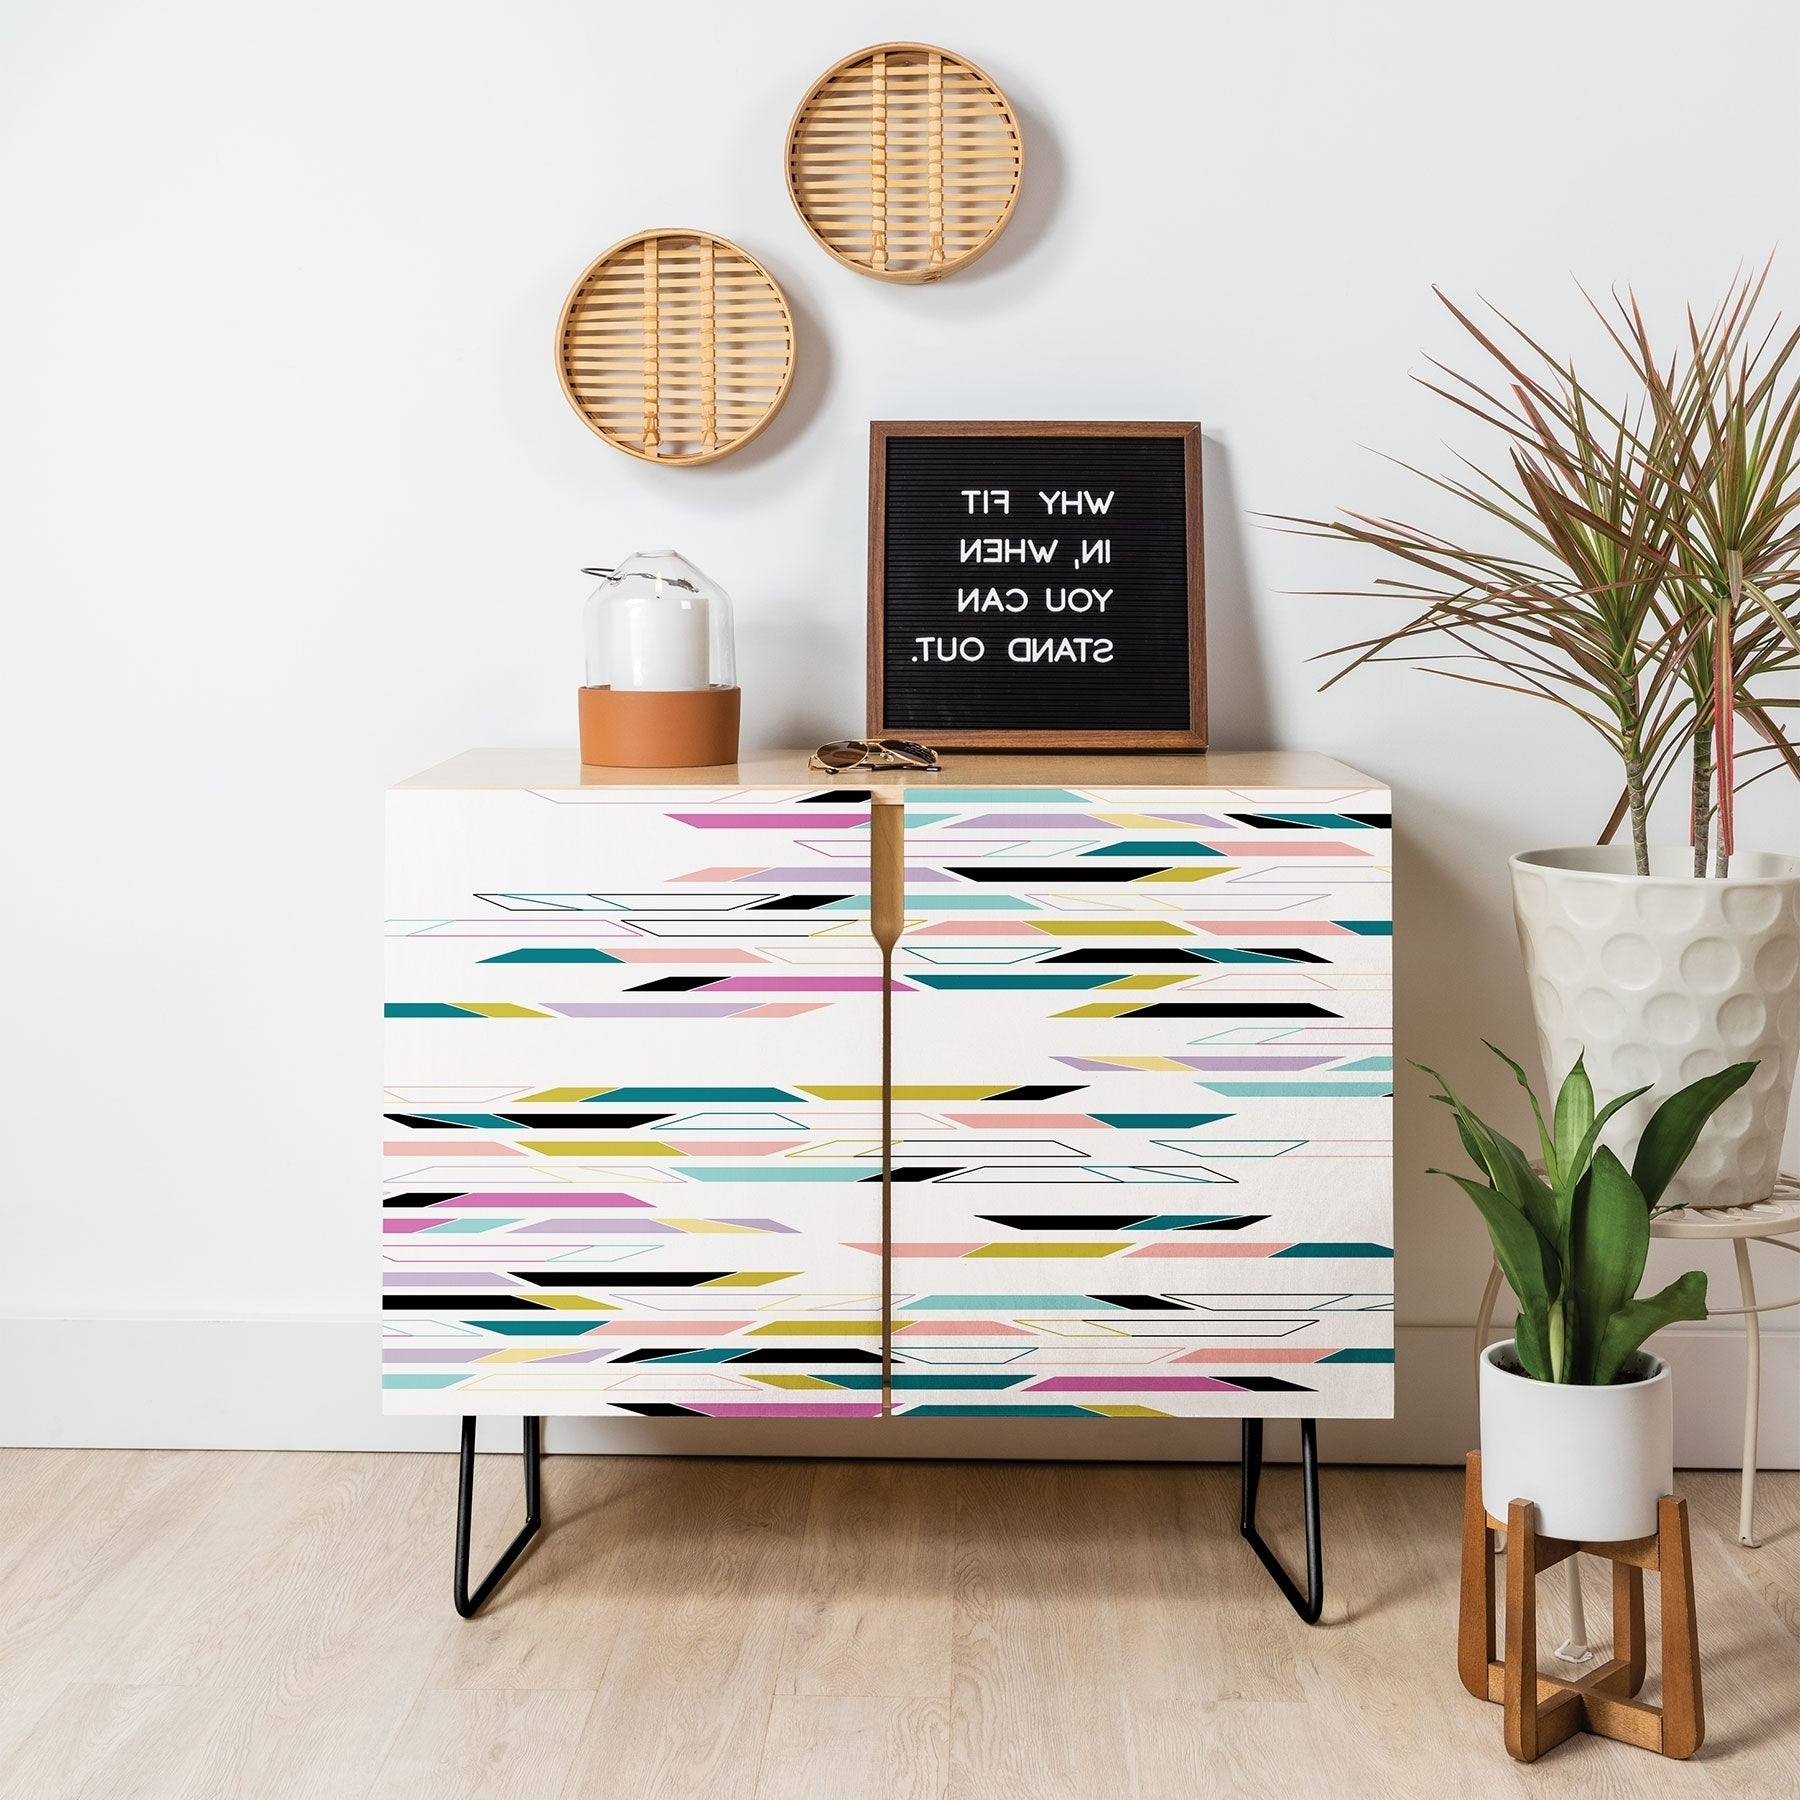 Deny Designs Multi Colored Geometric Shapes Credenza (Birch Or Walnut, 3  Leg Options) With Multi Colored Geometric Shapes Credenzas (View 12 of 20)